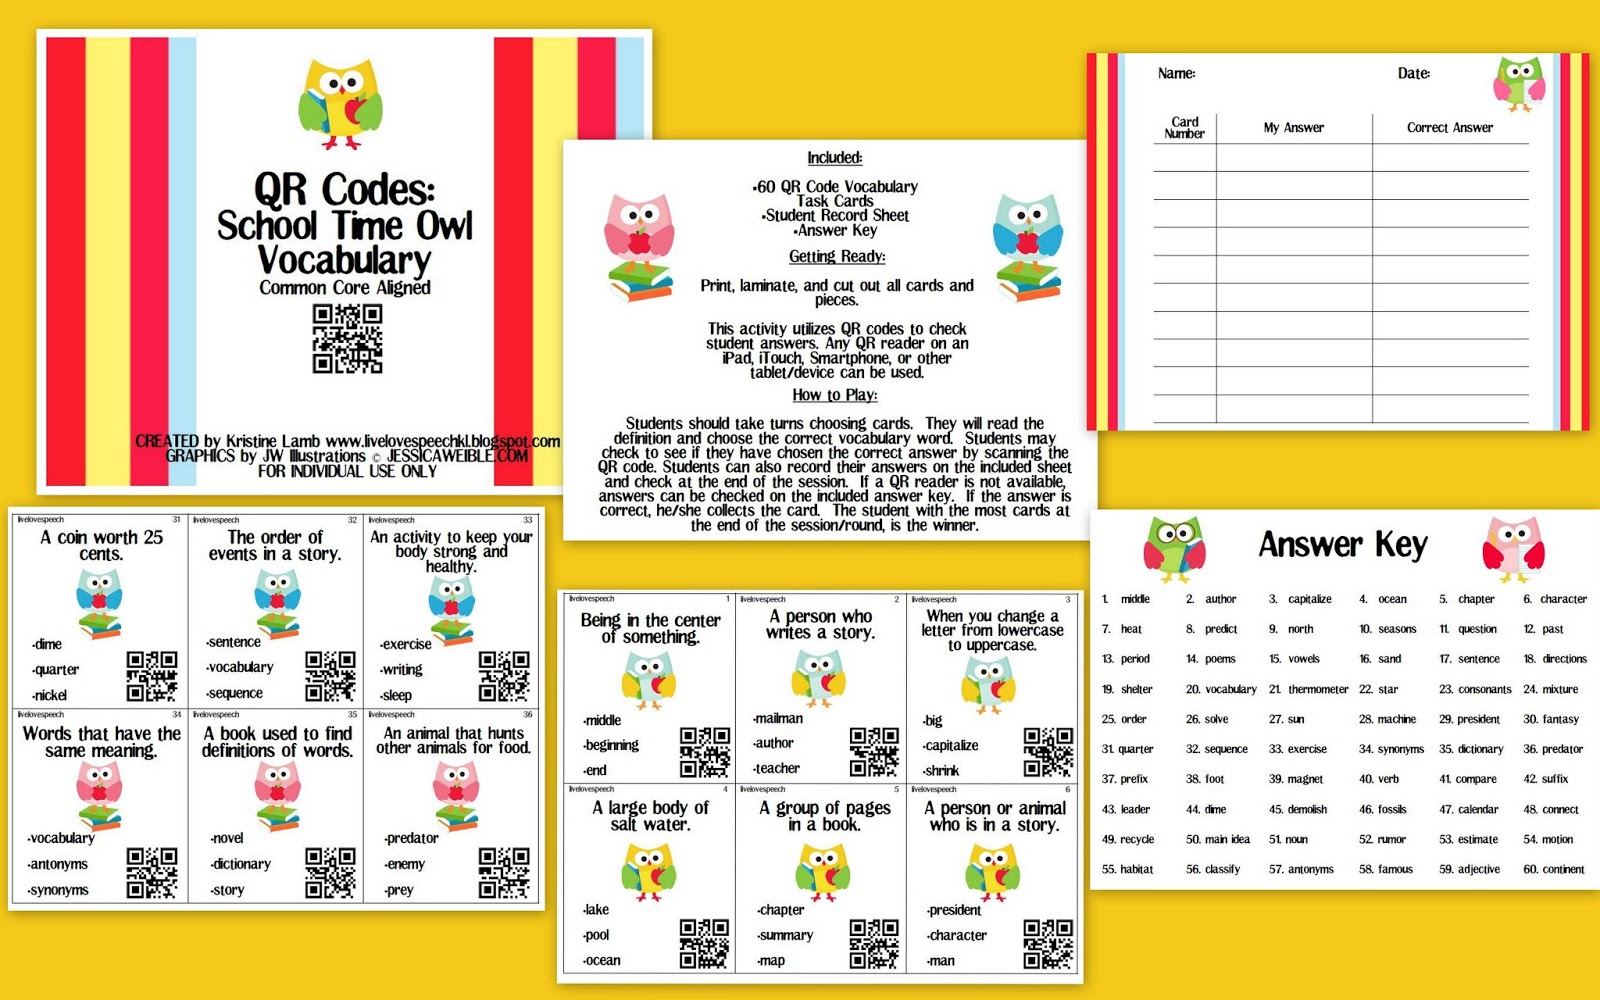 Live Love Speech Qr Codes School Time Owl Vocabulary